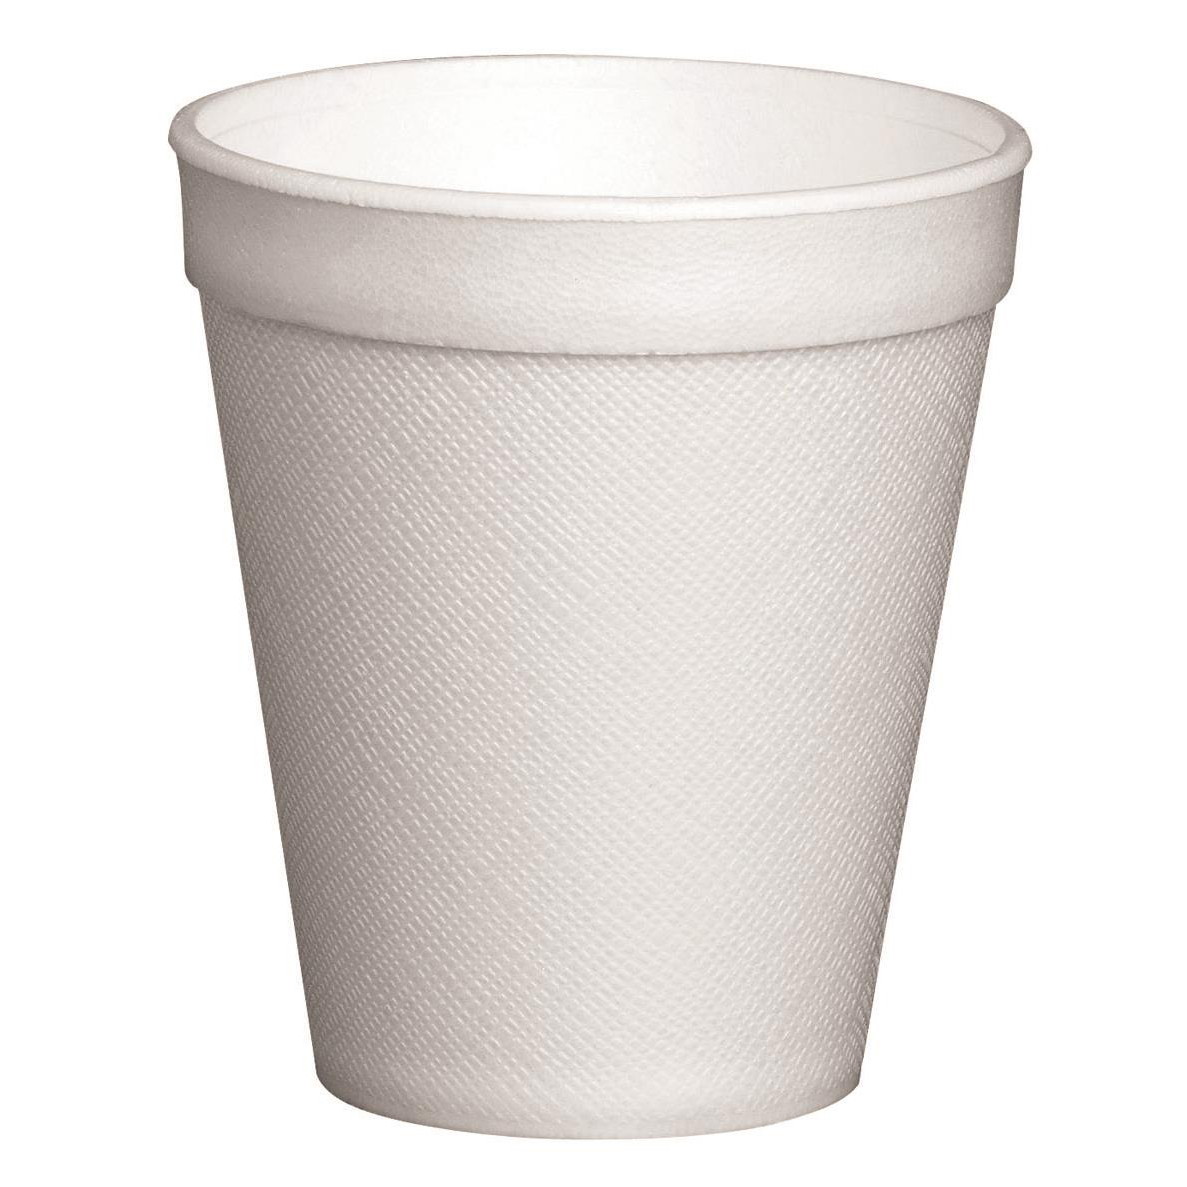 Cup Insulated Foam 10oz 296ml White Ref 10LX10 [Pack 20]